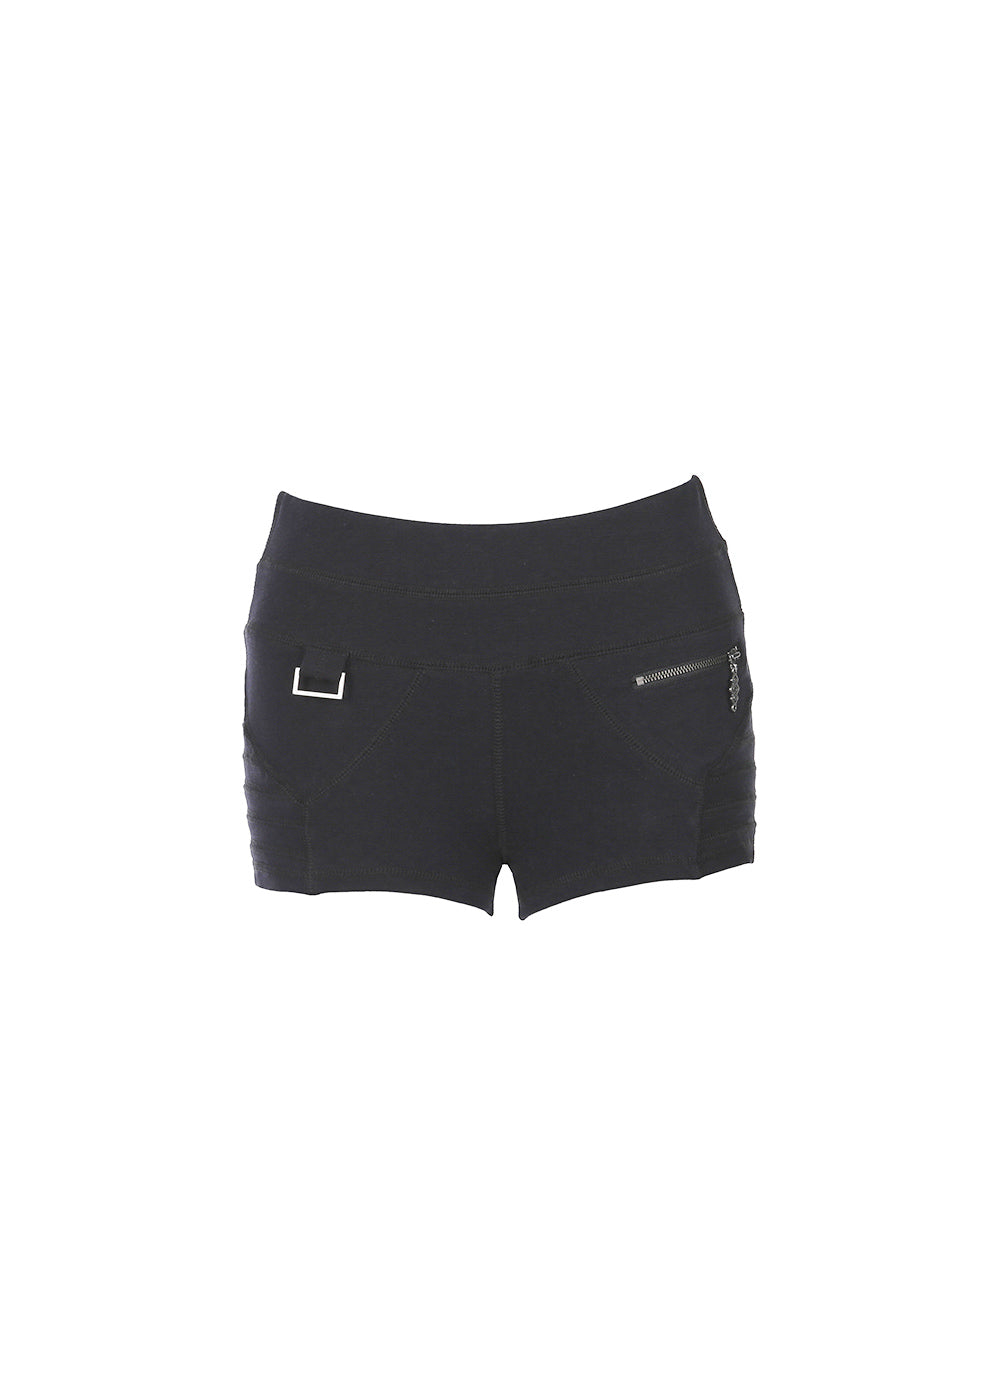 Bamboo and organic cotton black shorts with wide waistband and front pocket  and seam detailing.